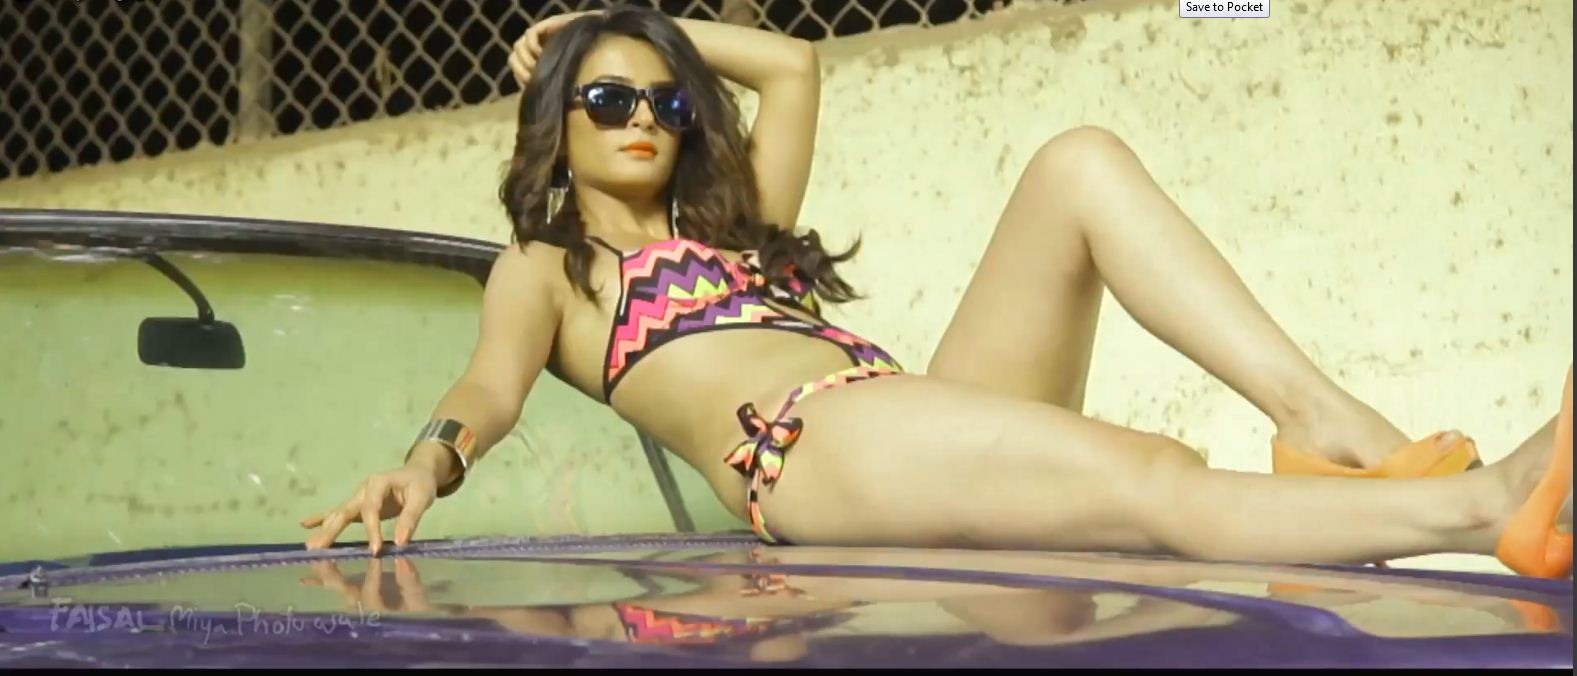 surveen Chawla Amazing bikini photoshoot